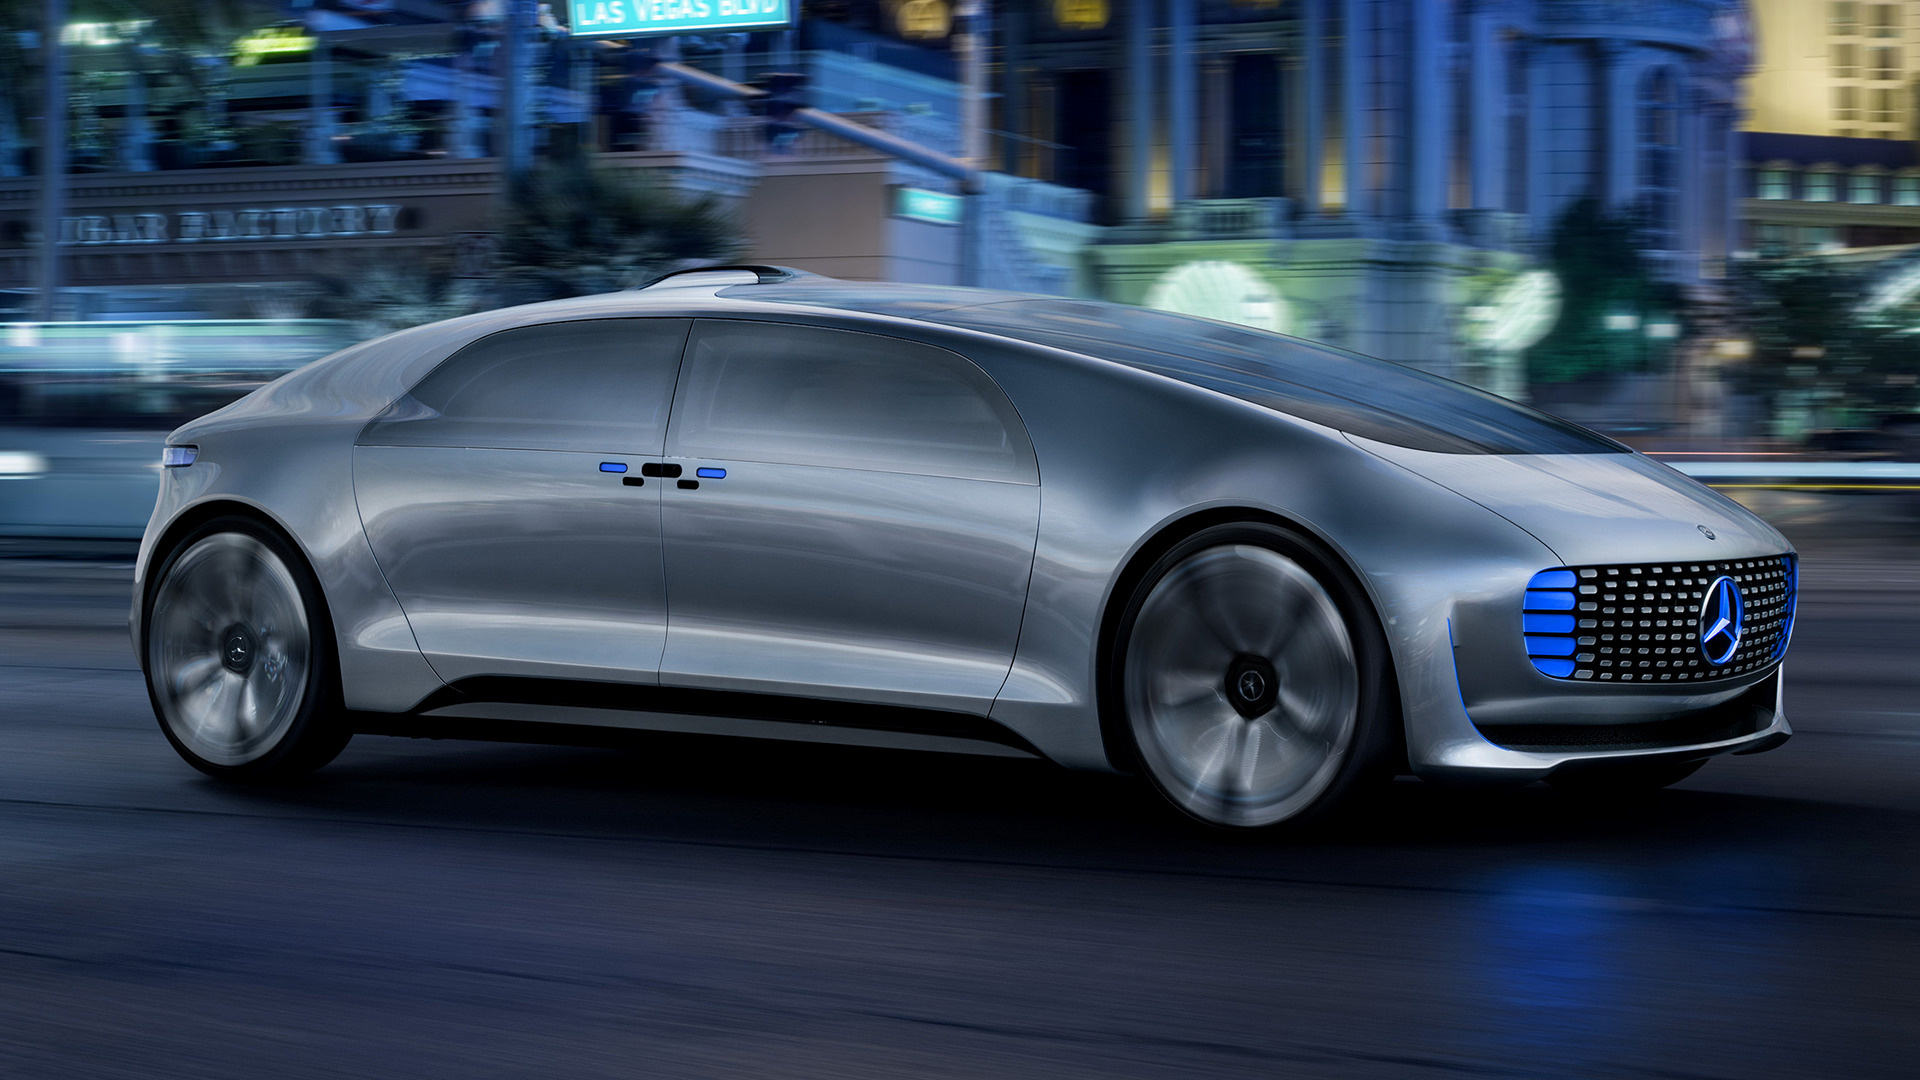 Bmw Concept Car Wallpaper Mercedes Benz F 015 Luxury In Motion 2015 Wallpapers And